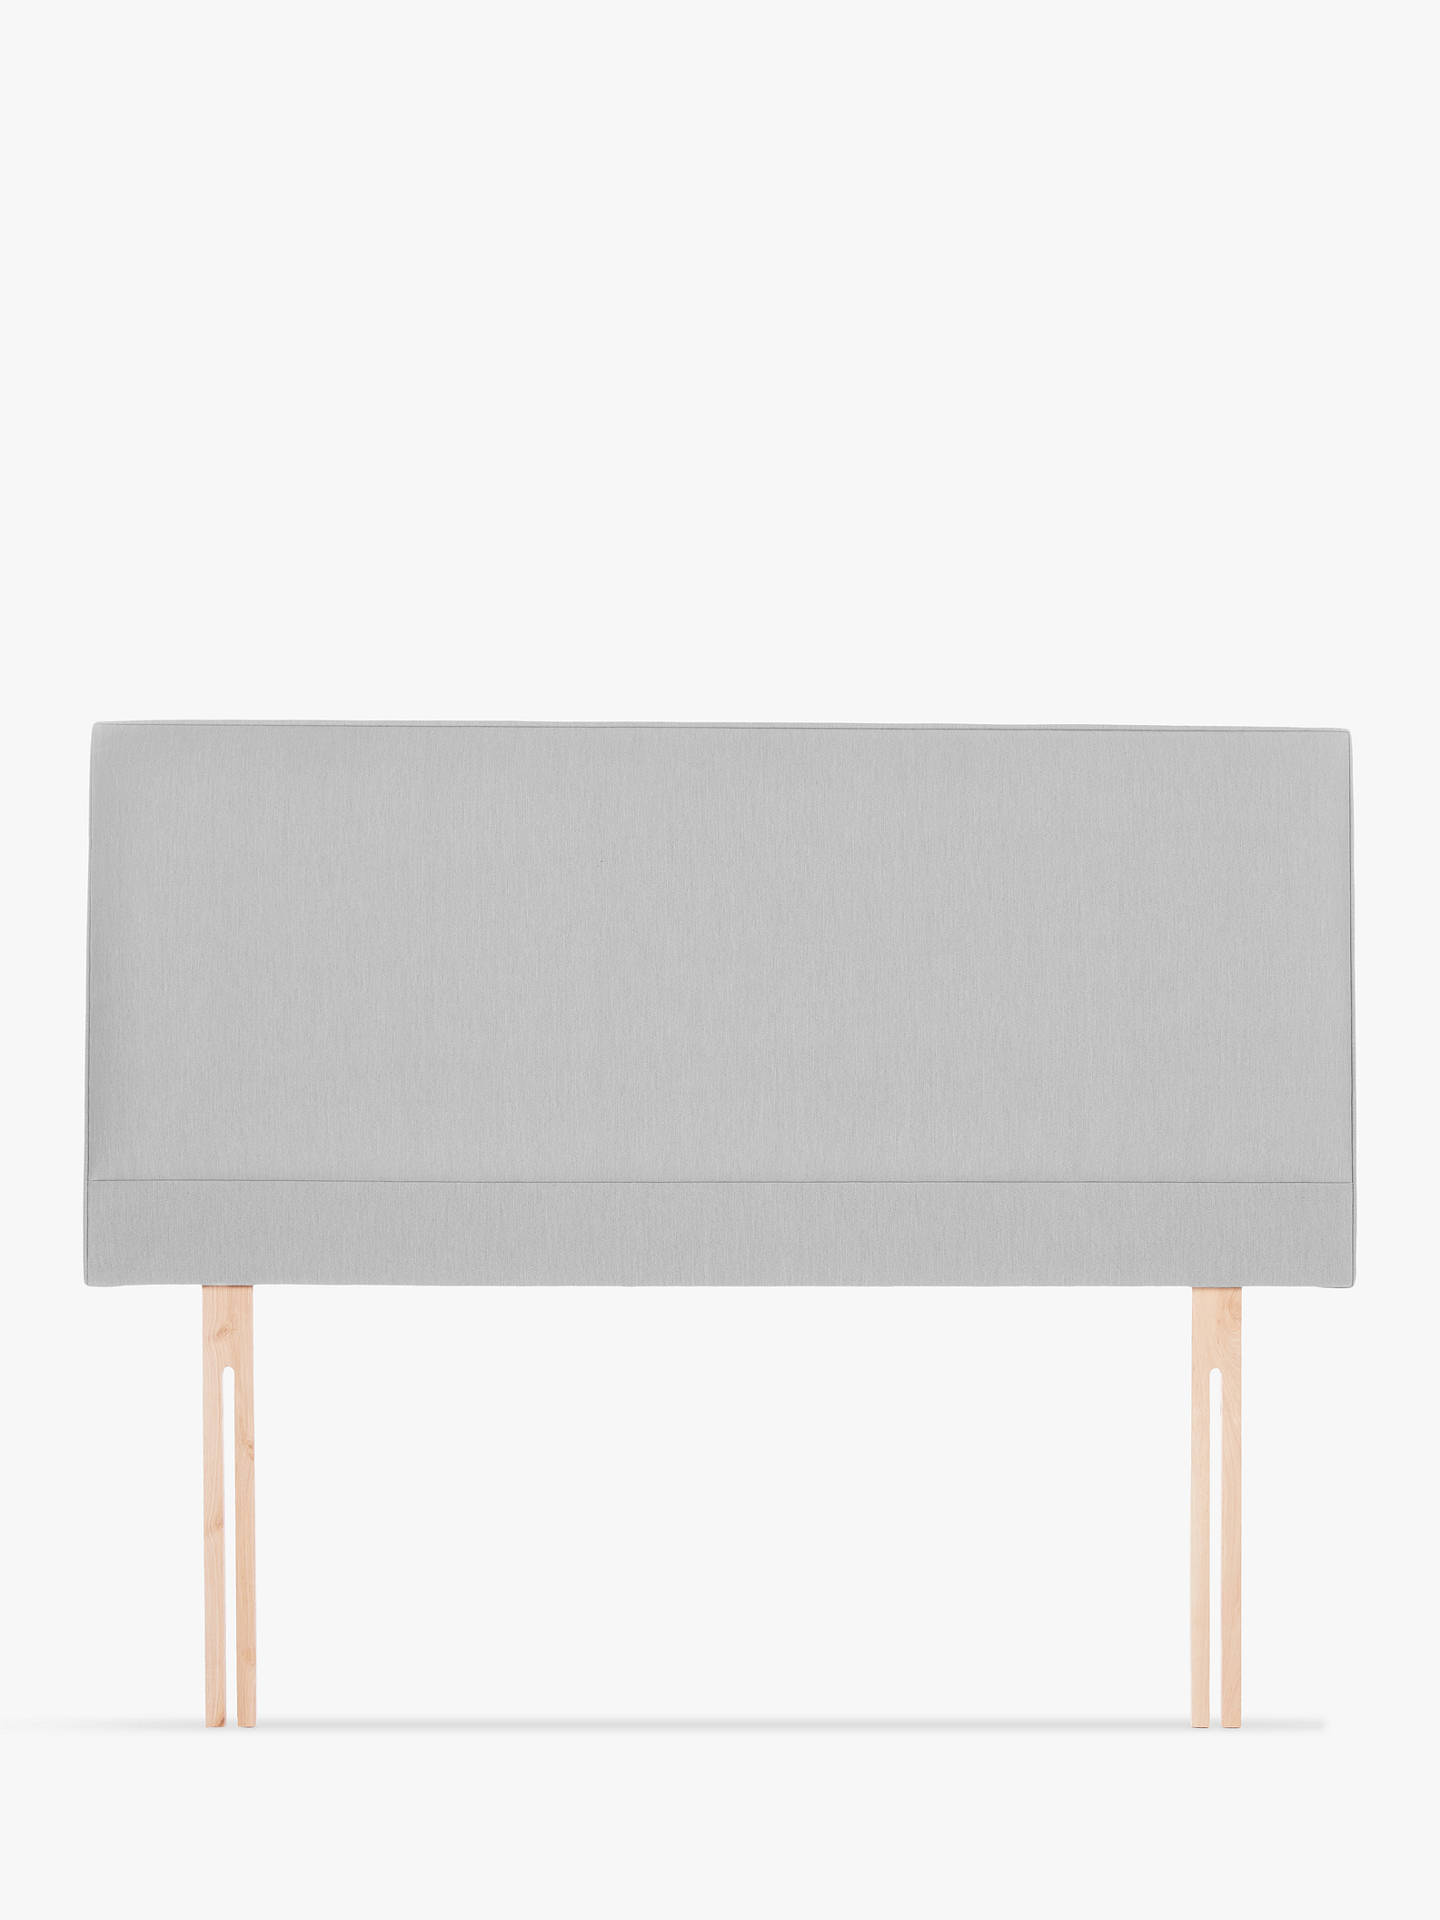 BuyJohn Lewis & Partners Caversham Strutted Headboard, Canvas Steel, Super King Size Online at johnlewis.com